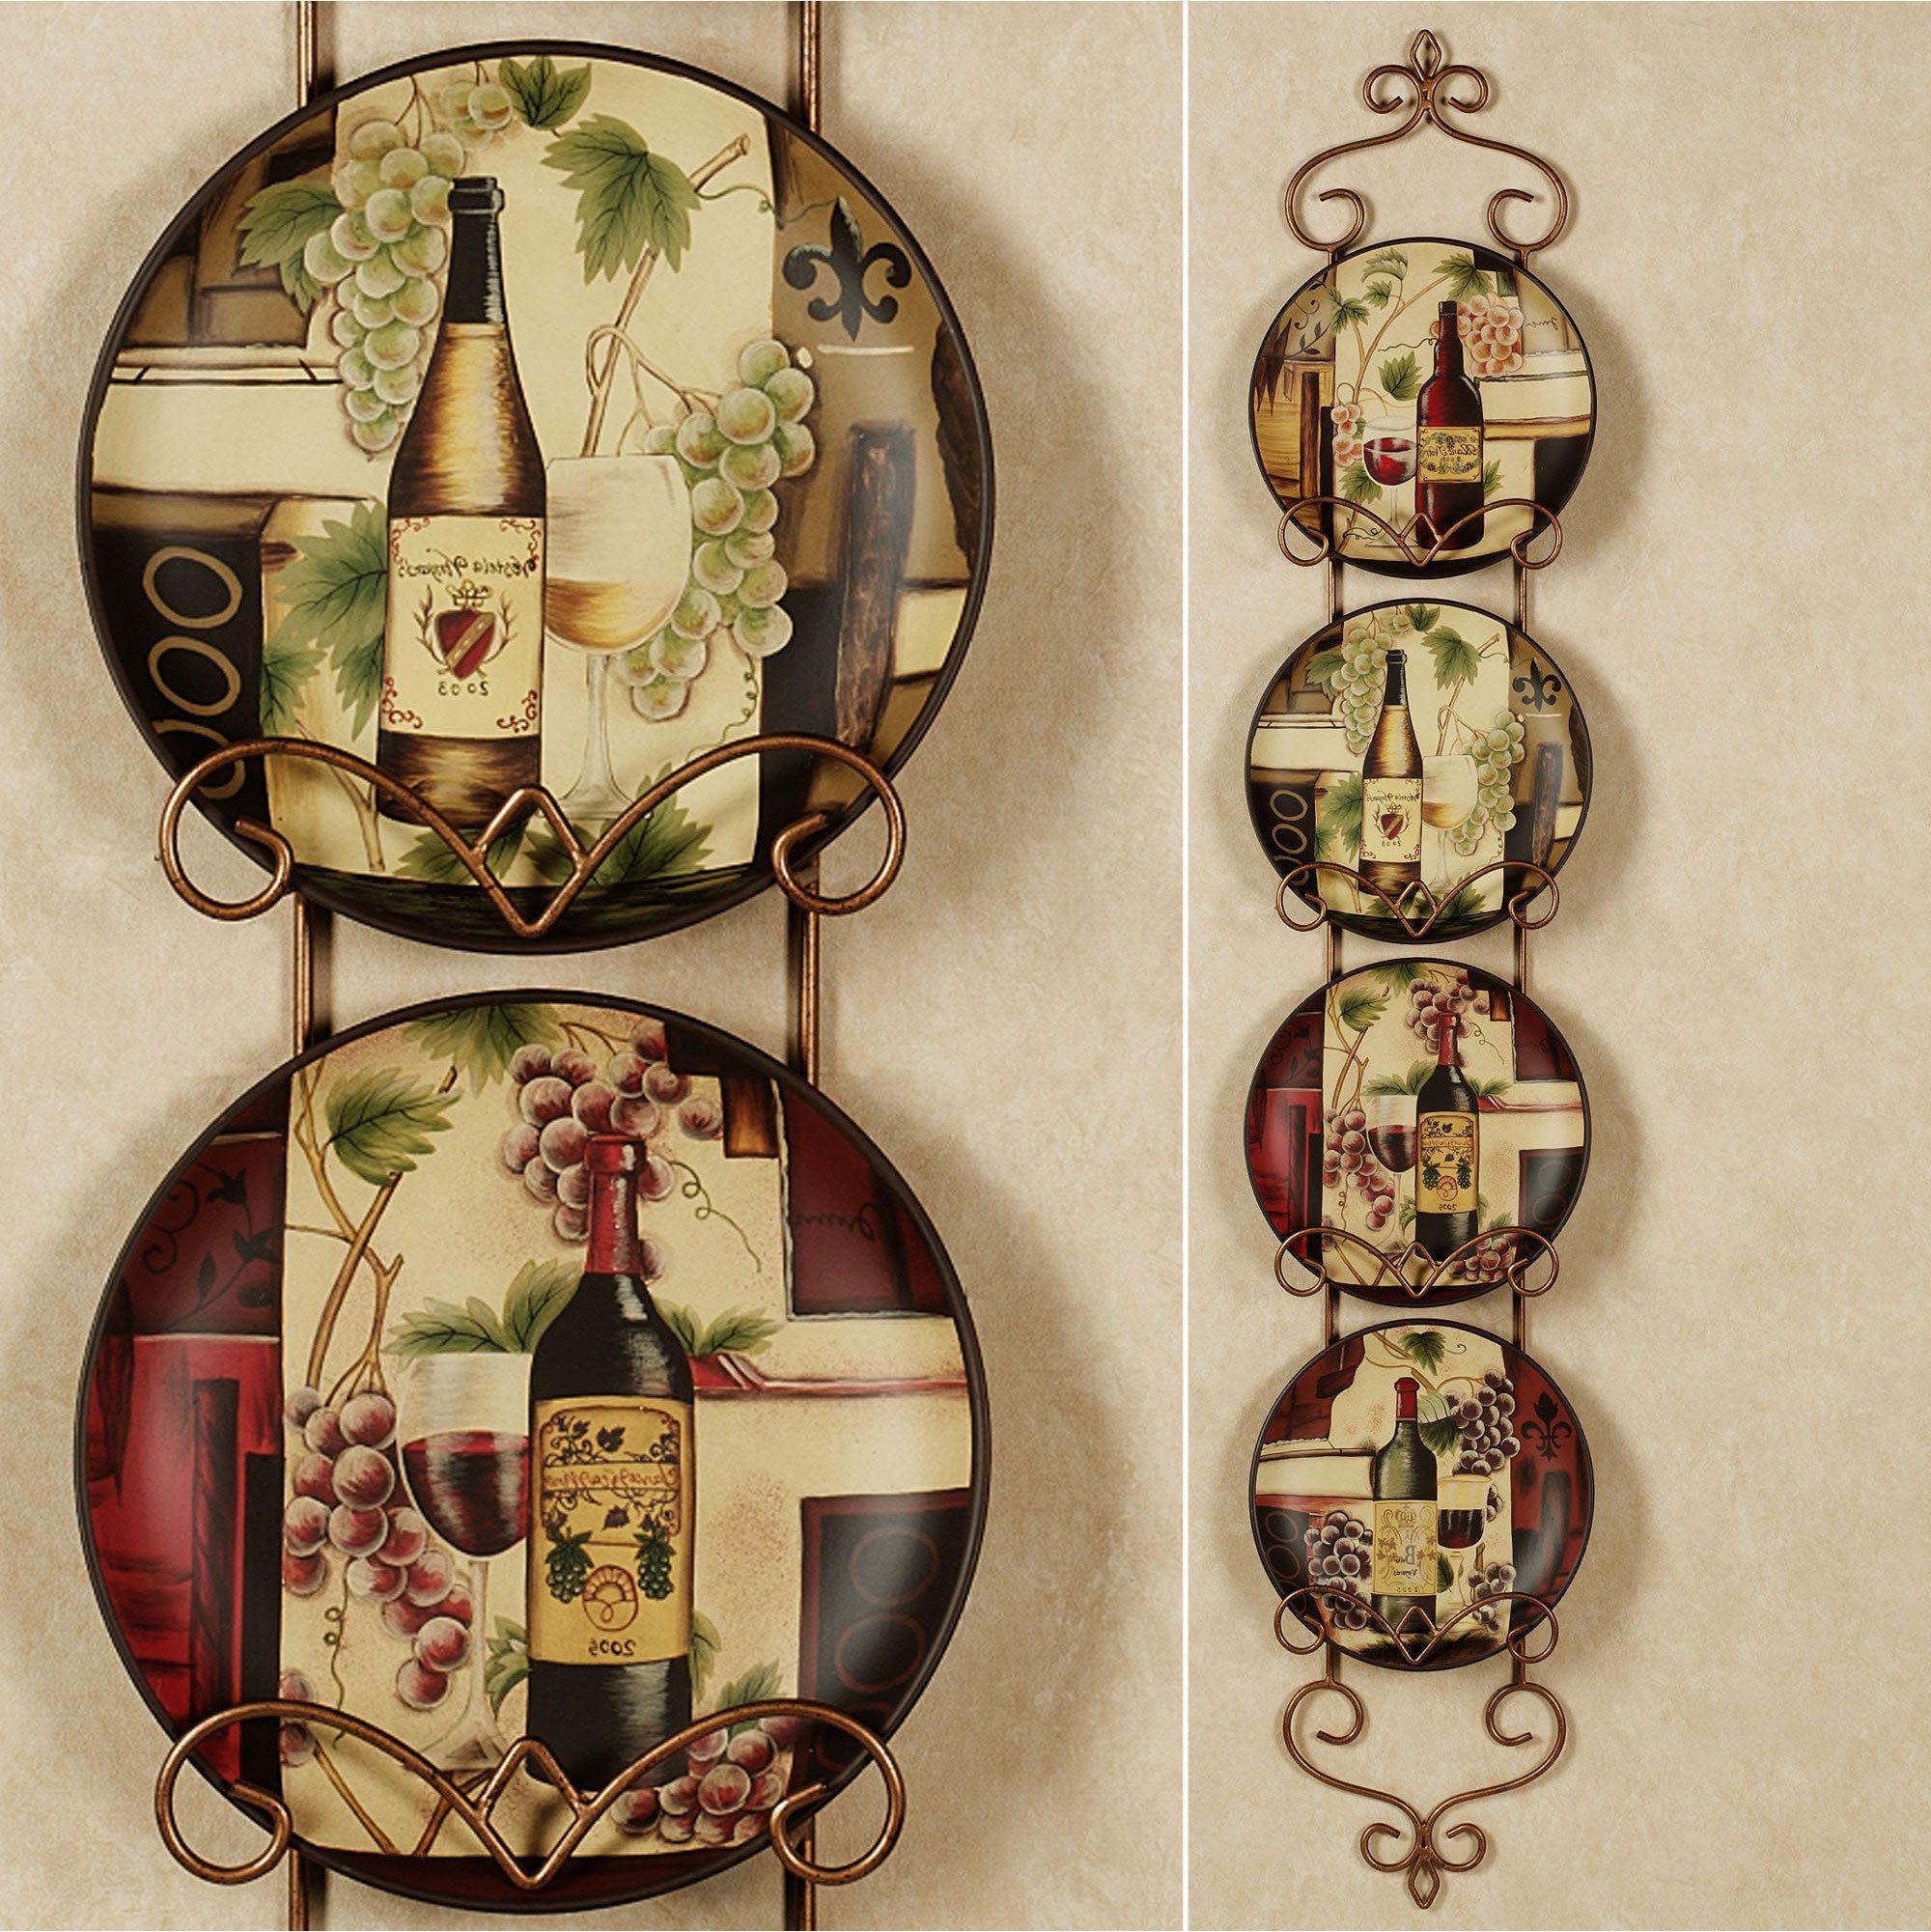 Decorative Plates For Kitchen Wall | Best Decor Things